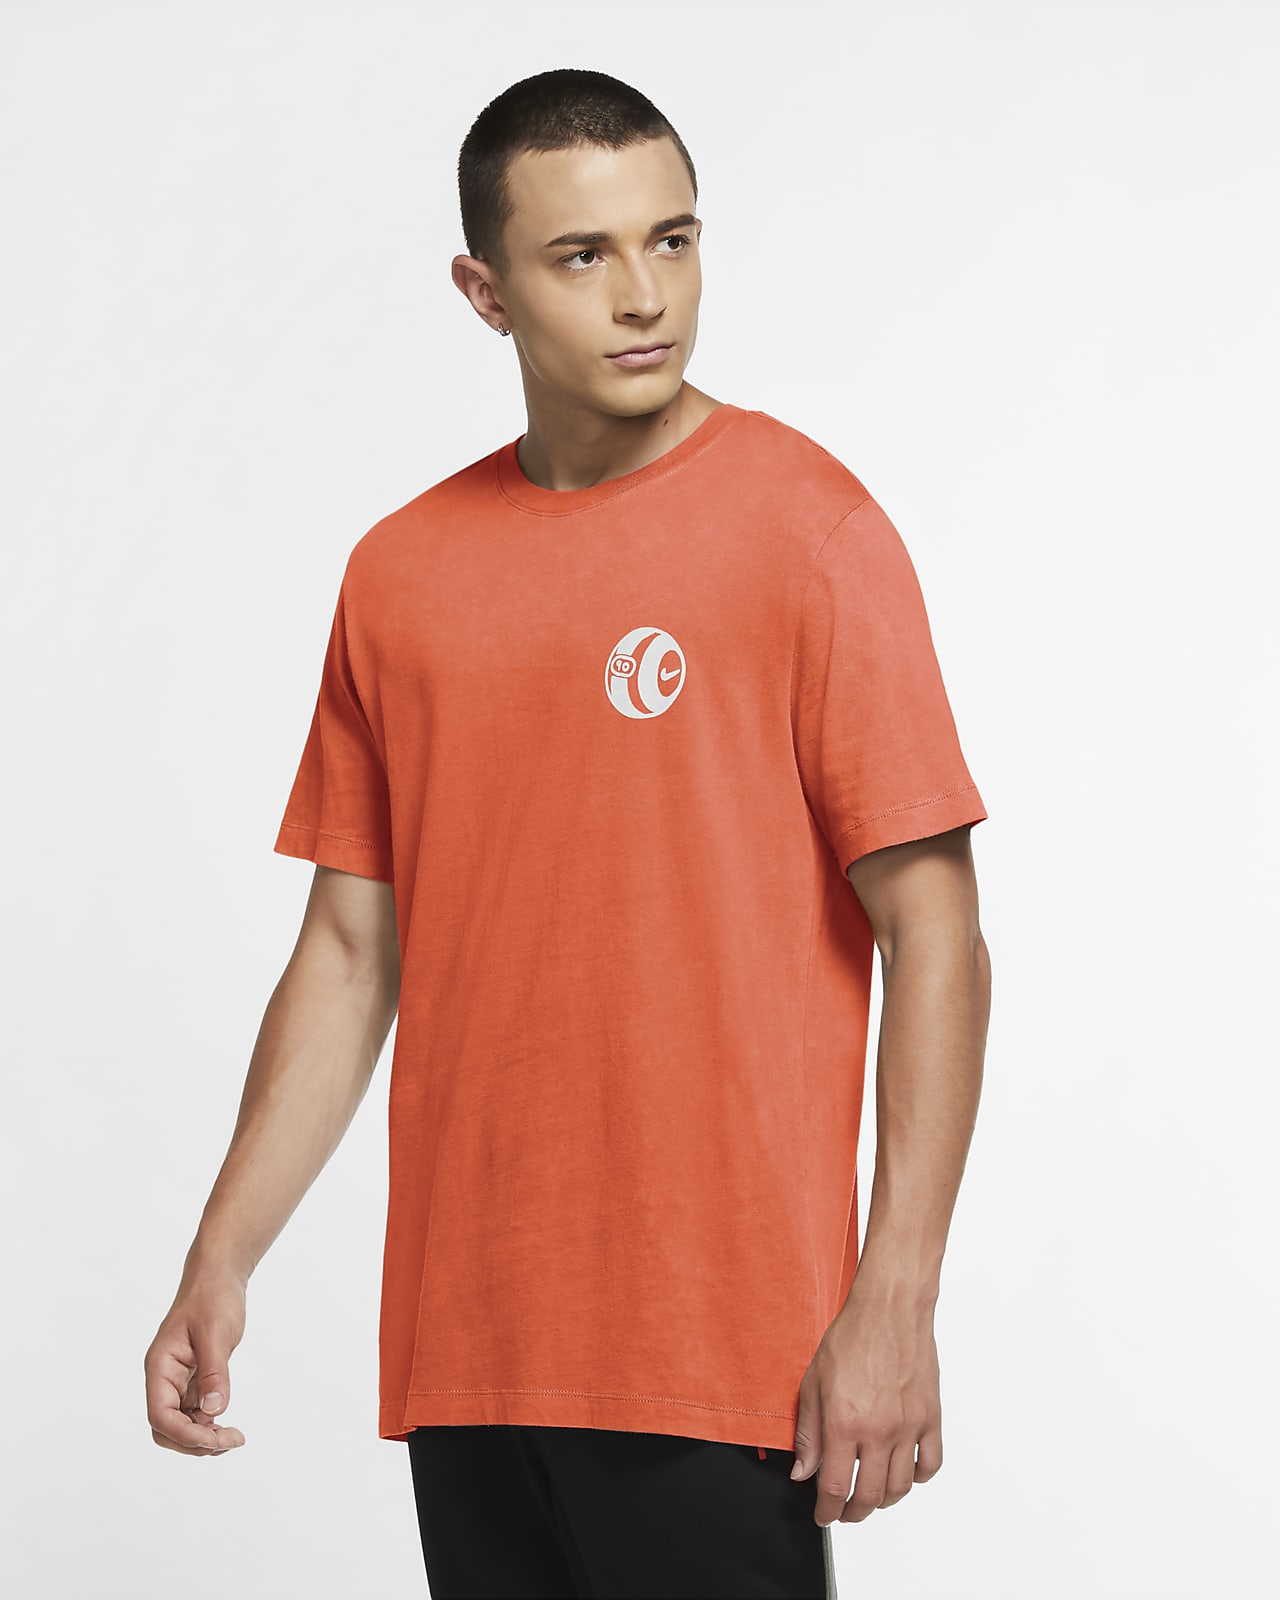 Nike F.C. Men's Graphic Football T-Shirt